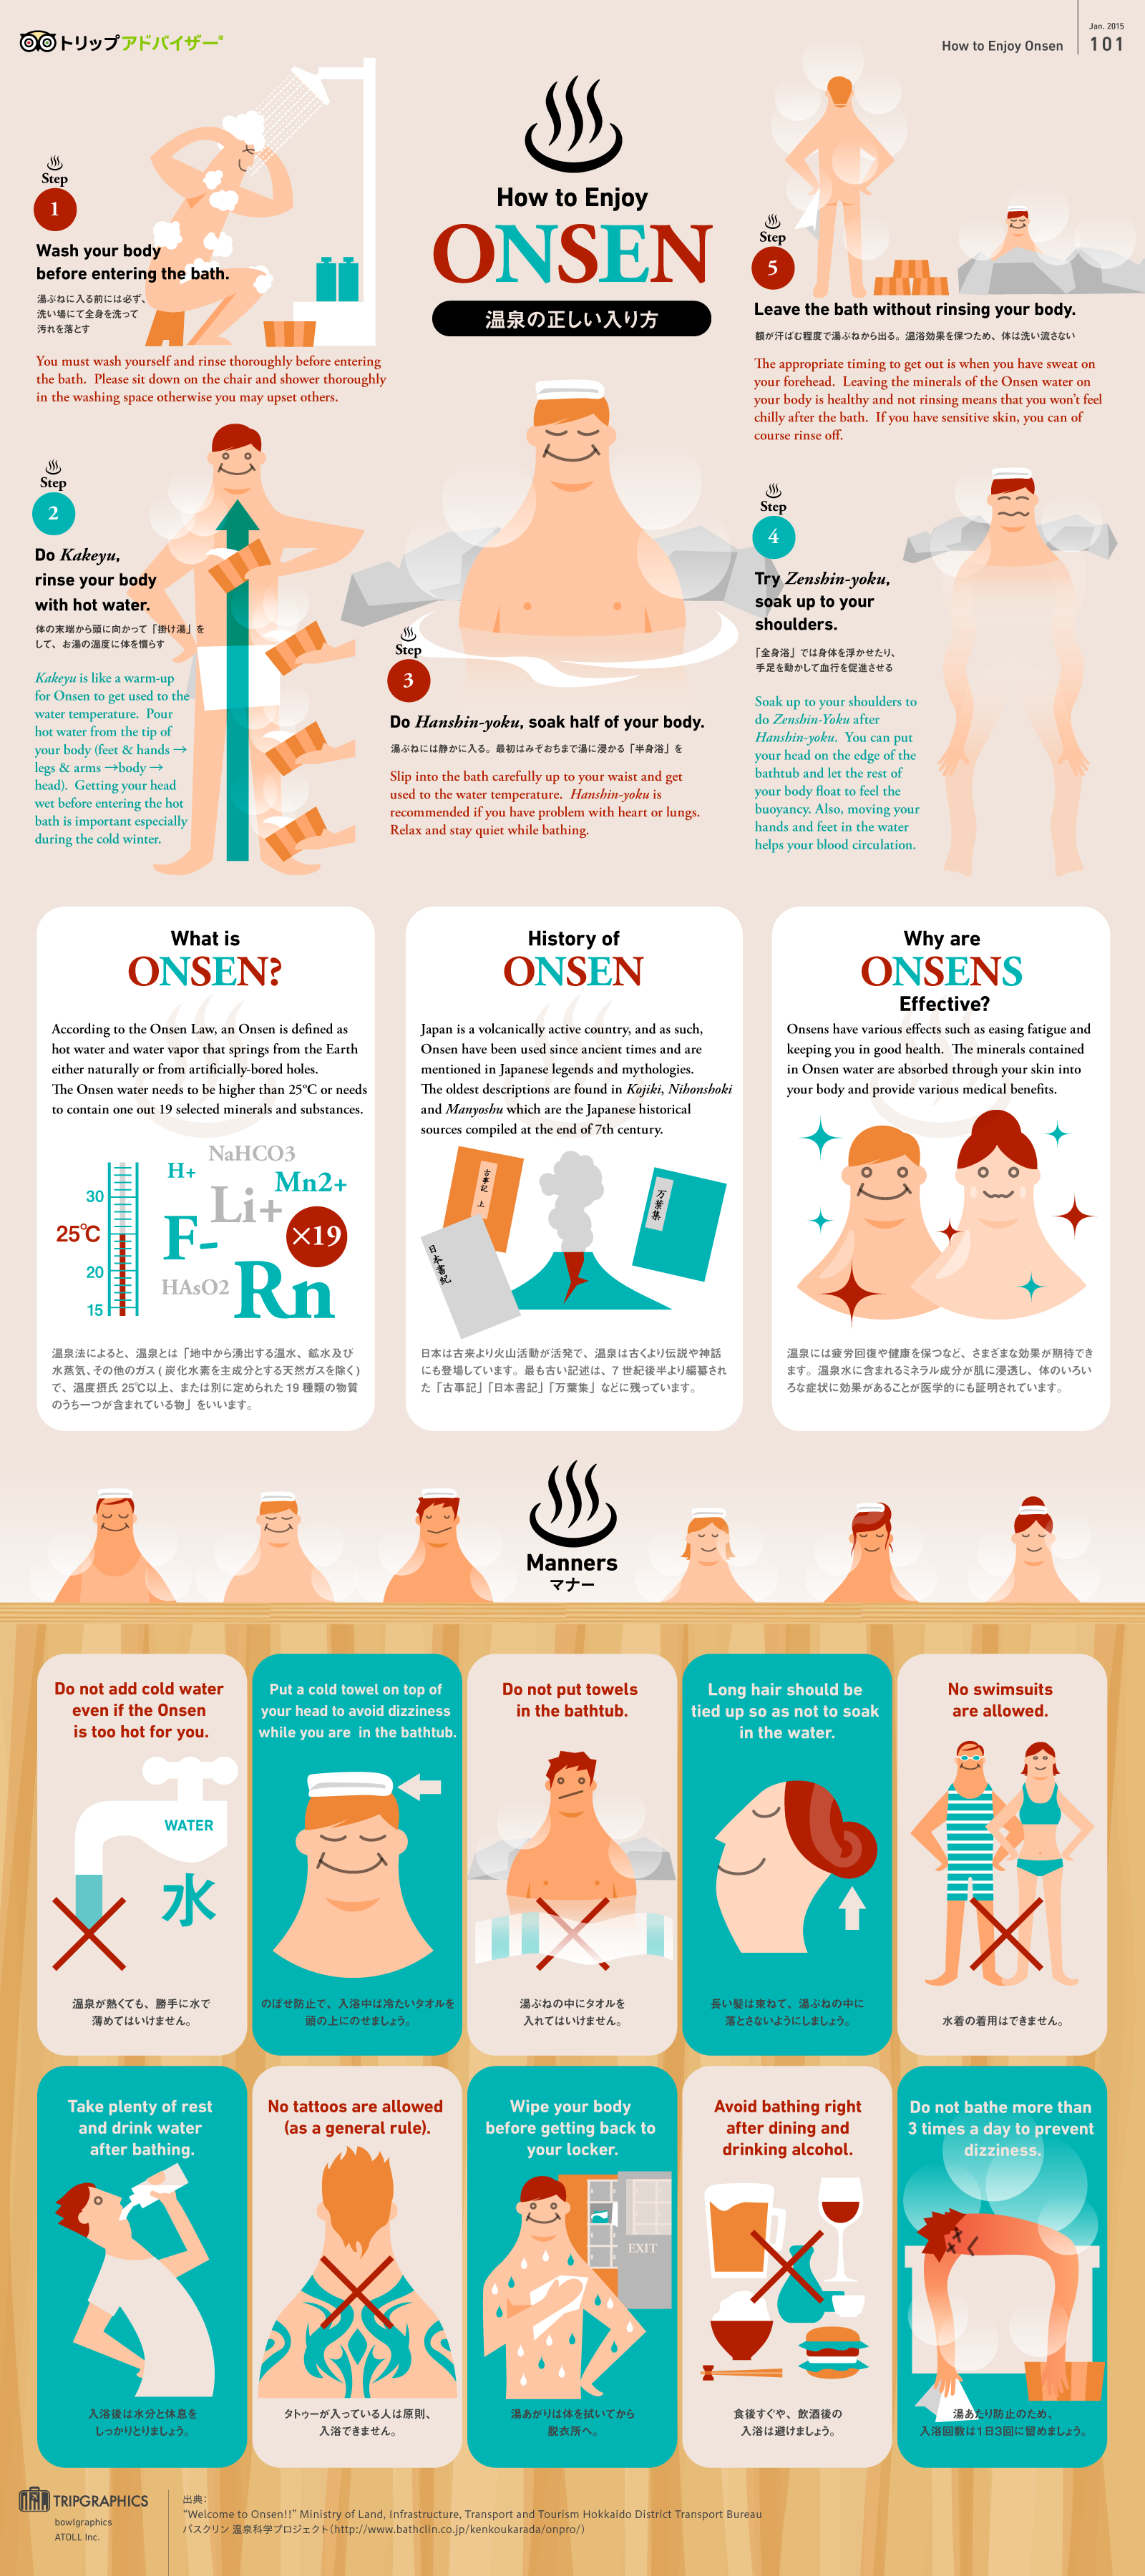 If you're planning on visiting an onsen for the first time, check out this handy guide on soaking etiquette. Even experienced onsen-goers might learn something new!